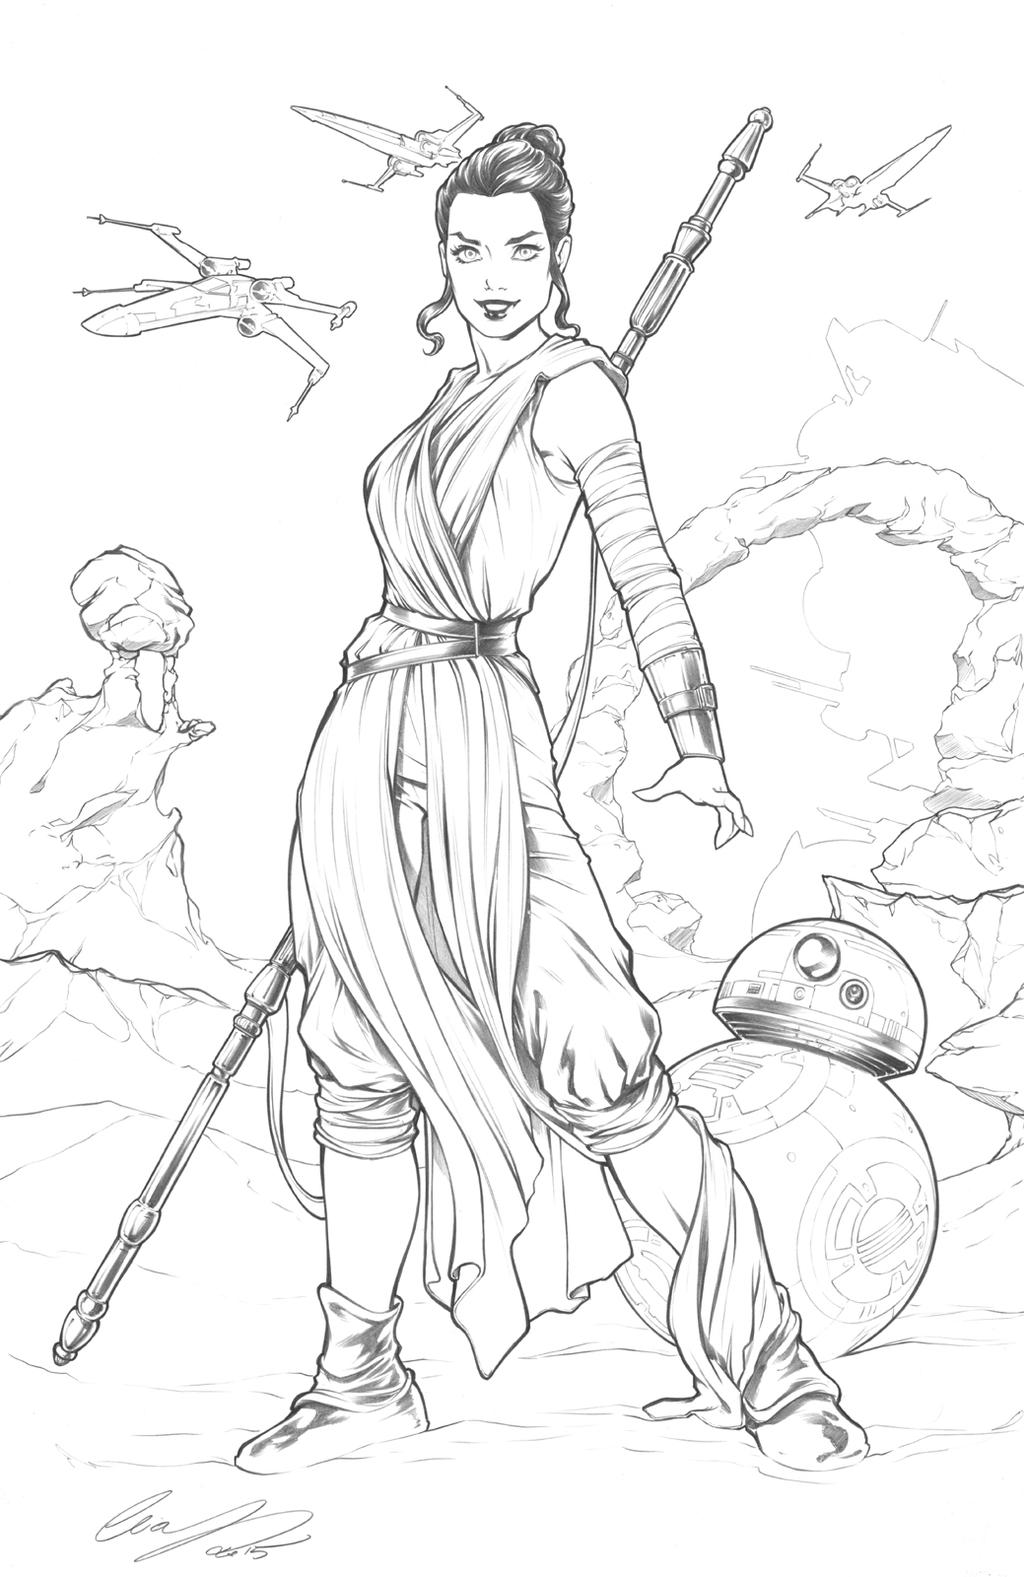 Rey star wars by elias chatzoudis on deviantart for Star wars bb8 coloring pages